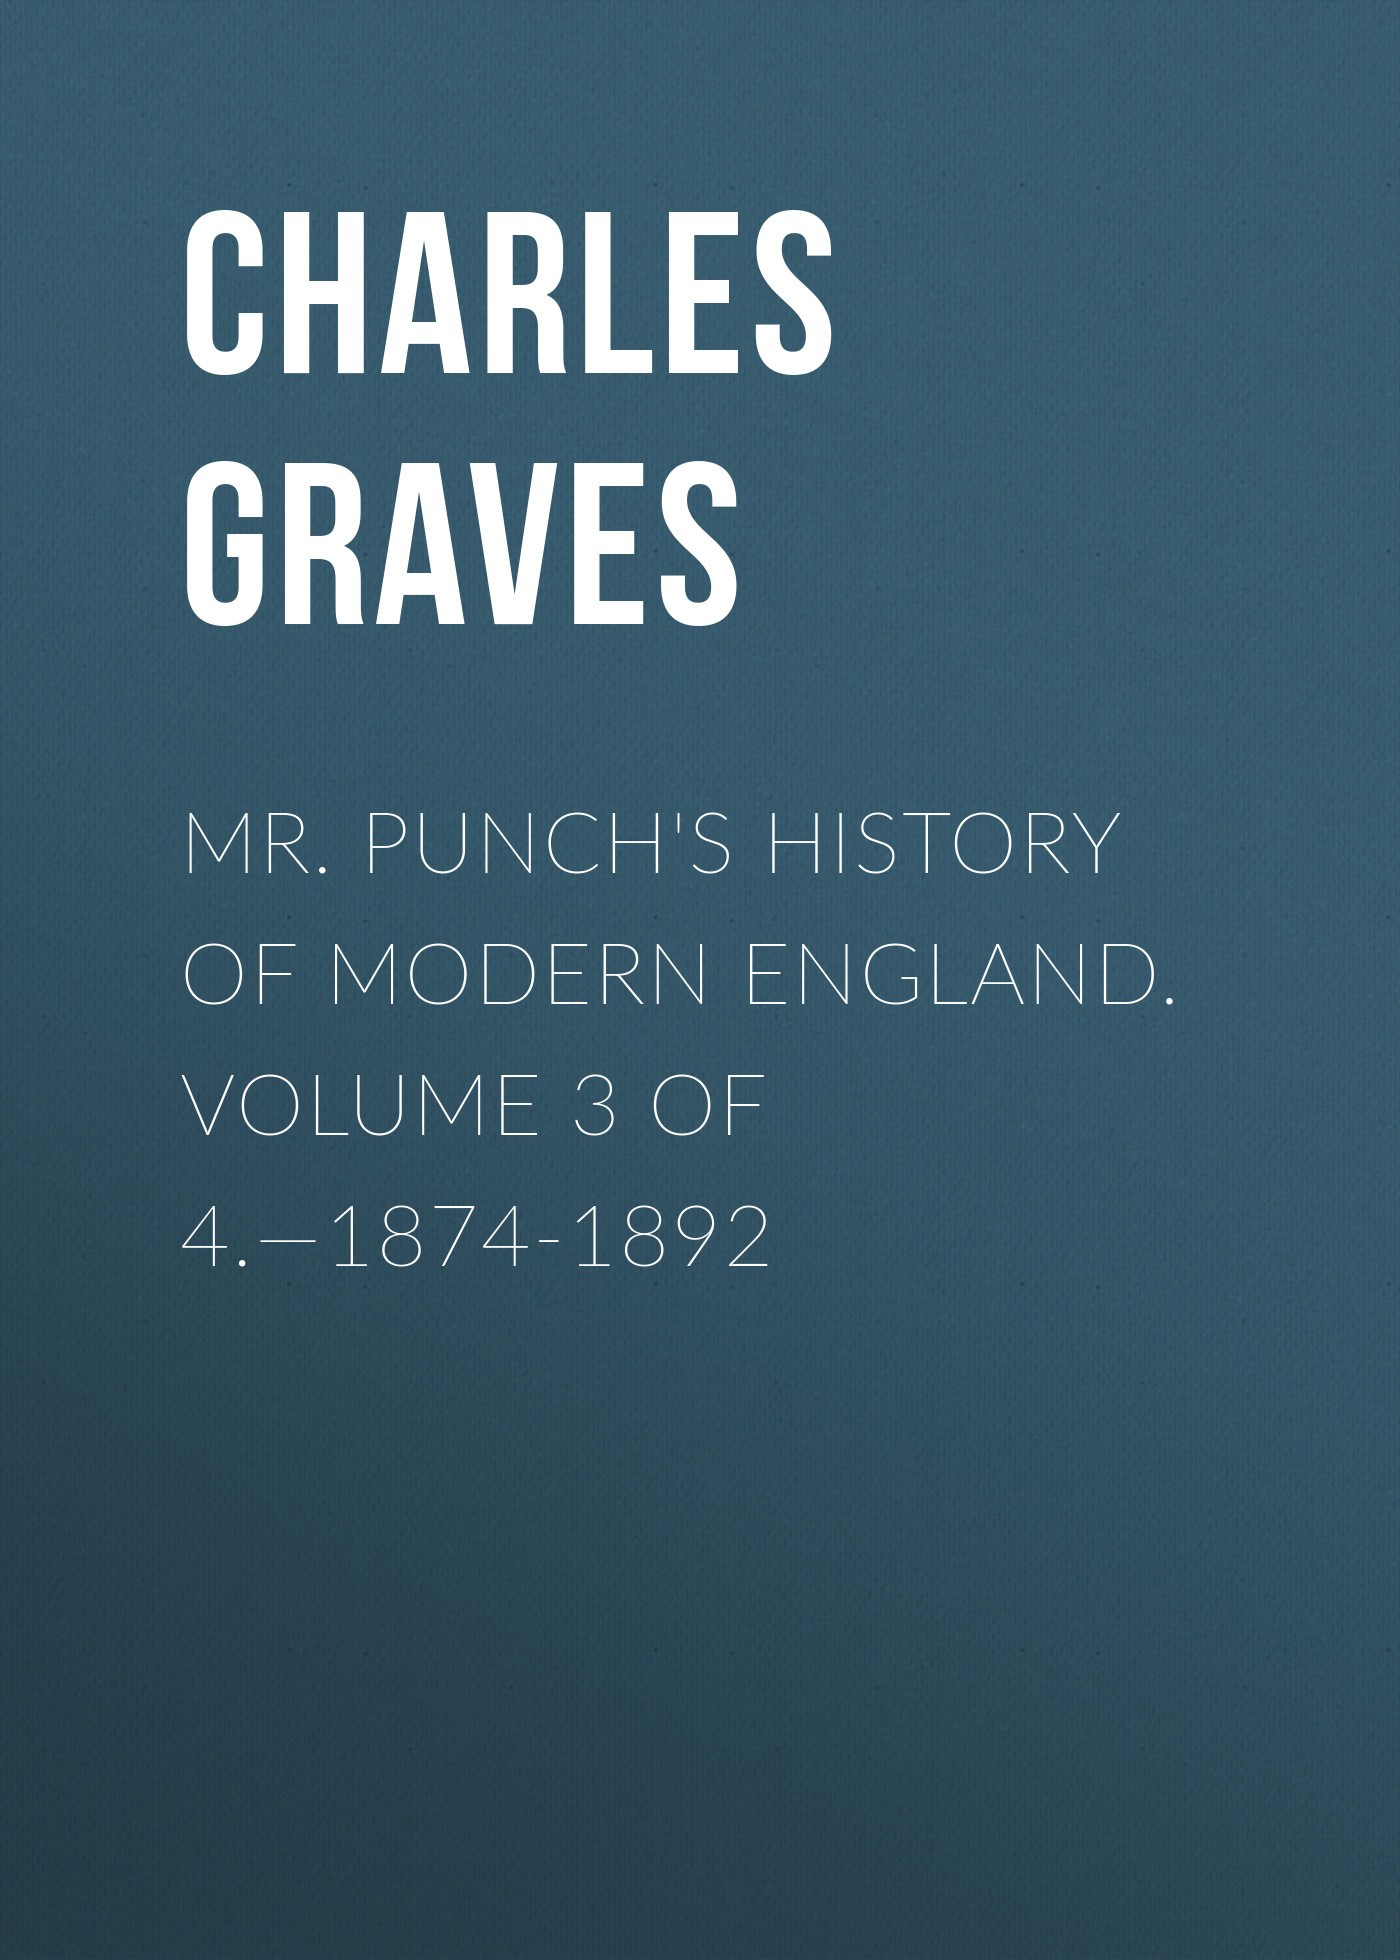 Graves Charles Larcom Mr. Punch's History of Modern England. Volume 3 of 4.—1874-1892 produino digital 3 axis acceleration of gravity tilt module iic spi transmission for arduino